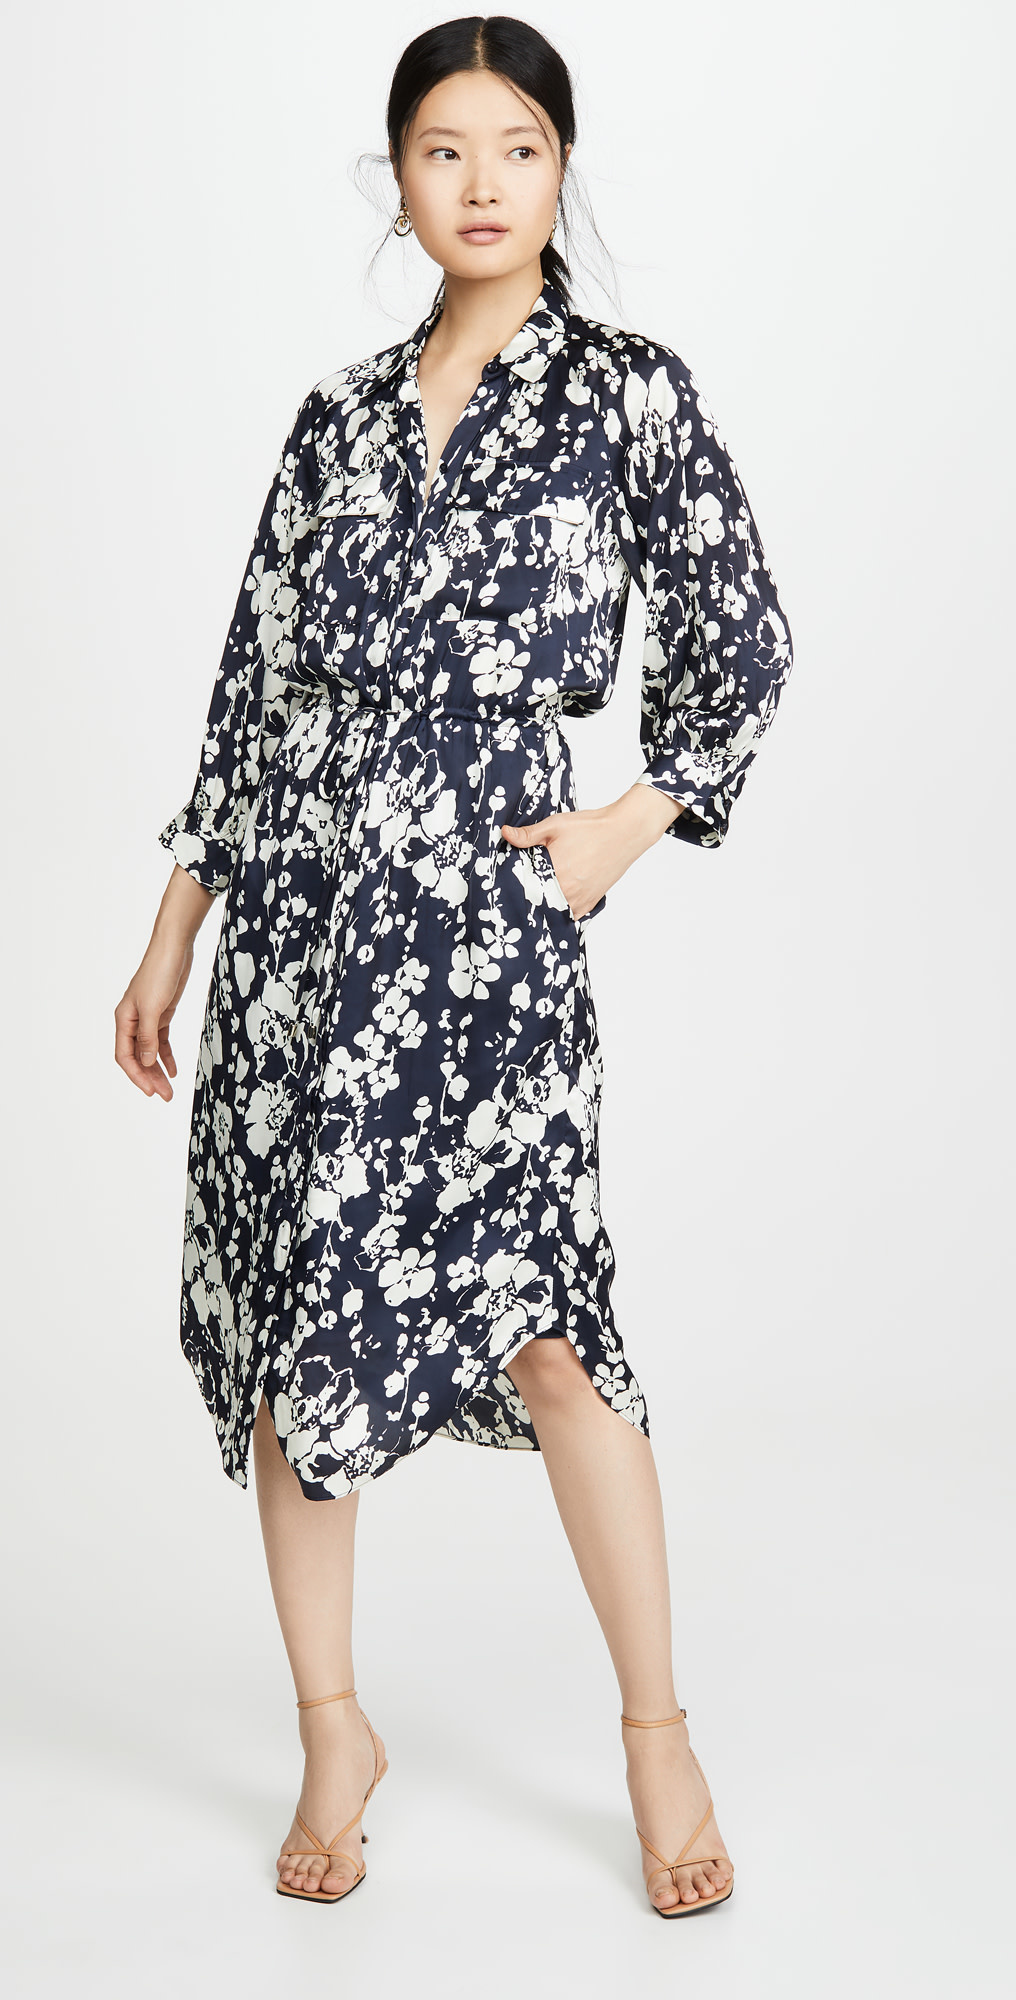 Joie Emmalynn Dress - Midnight/L